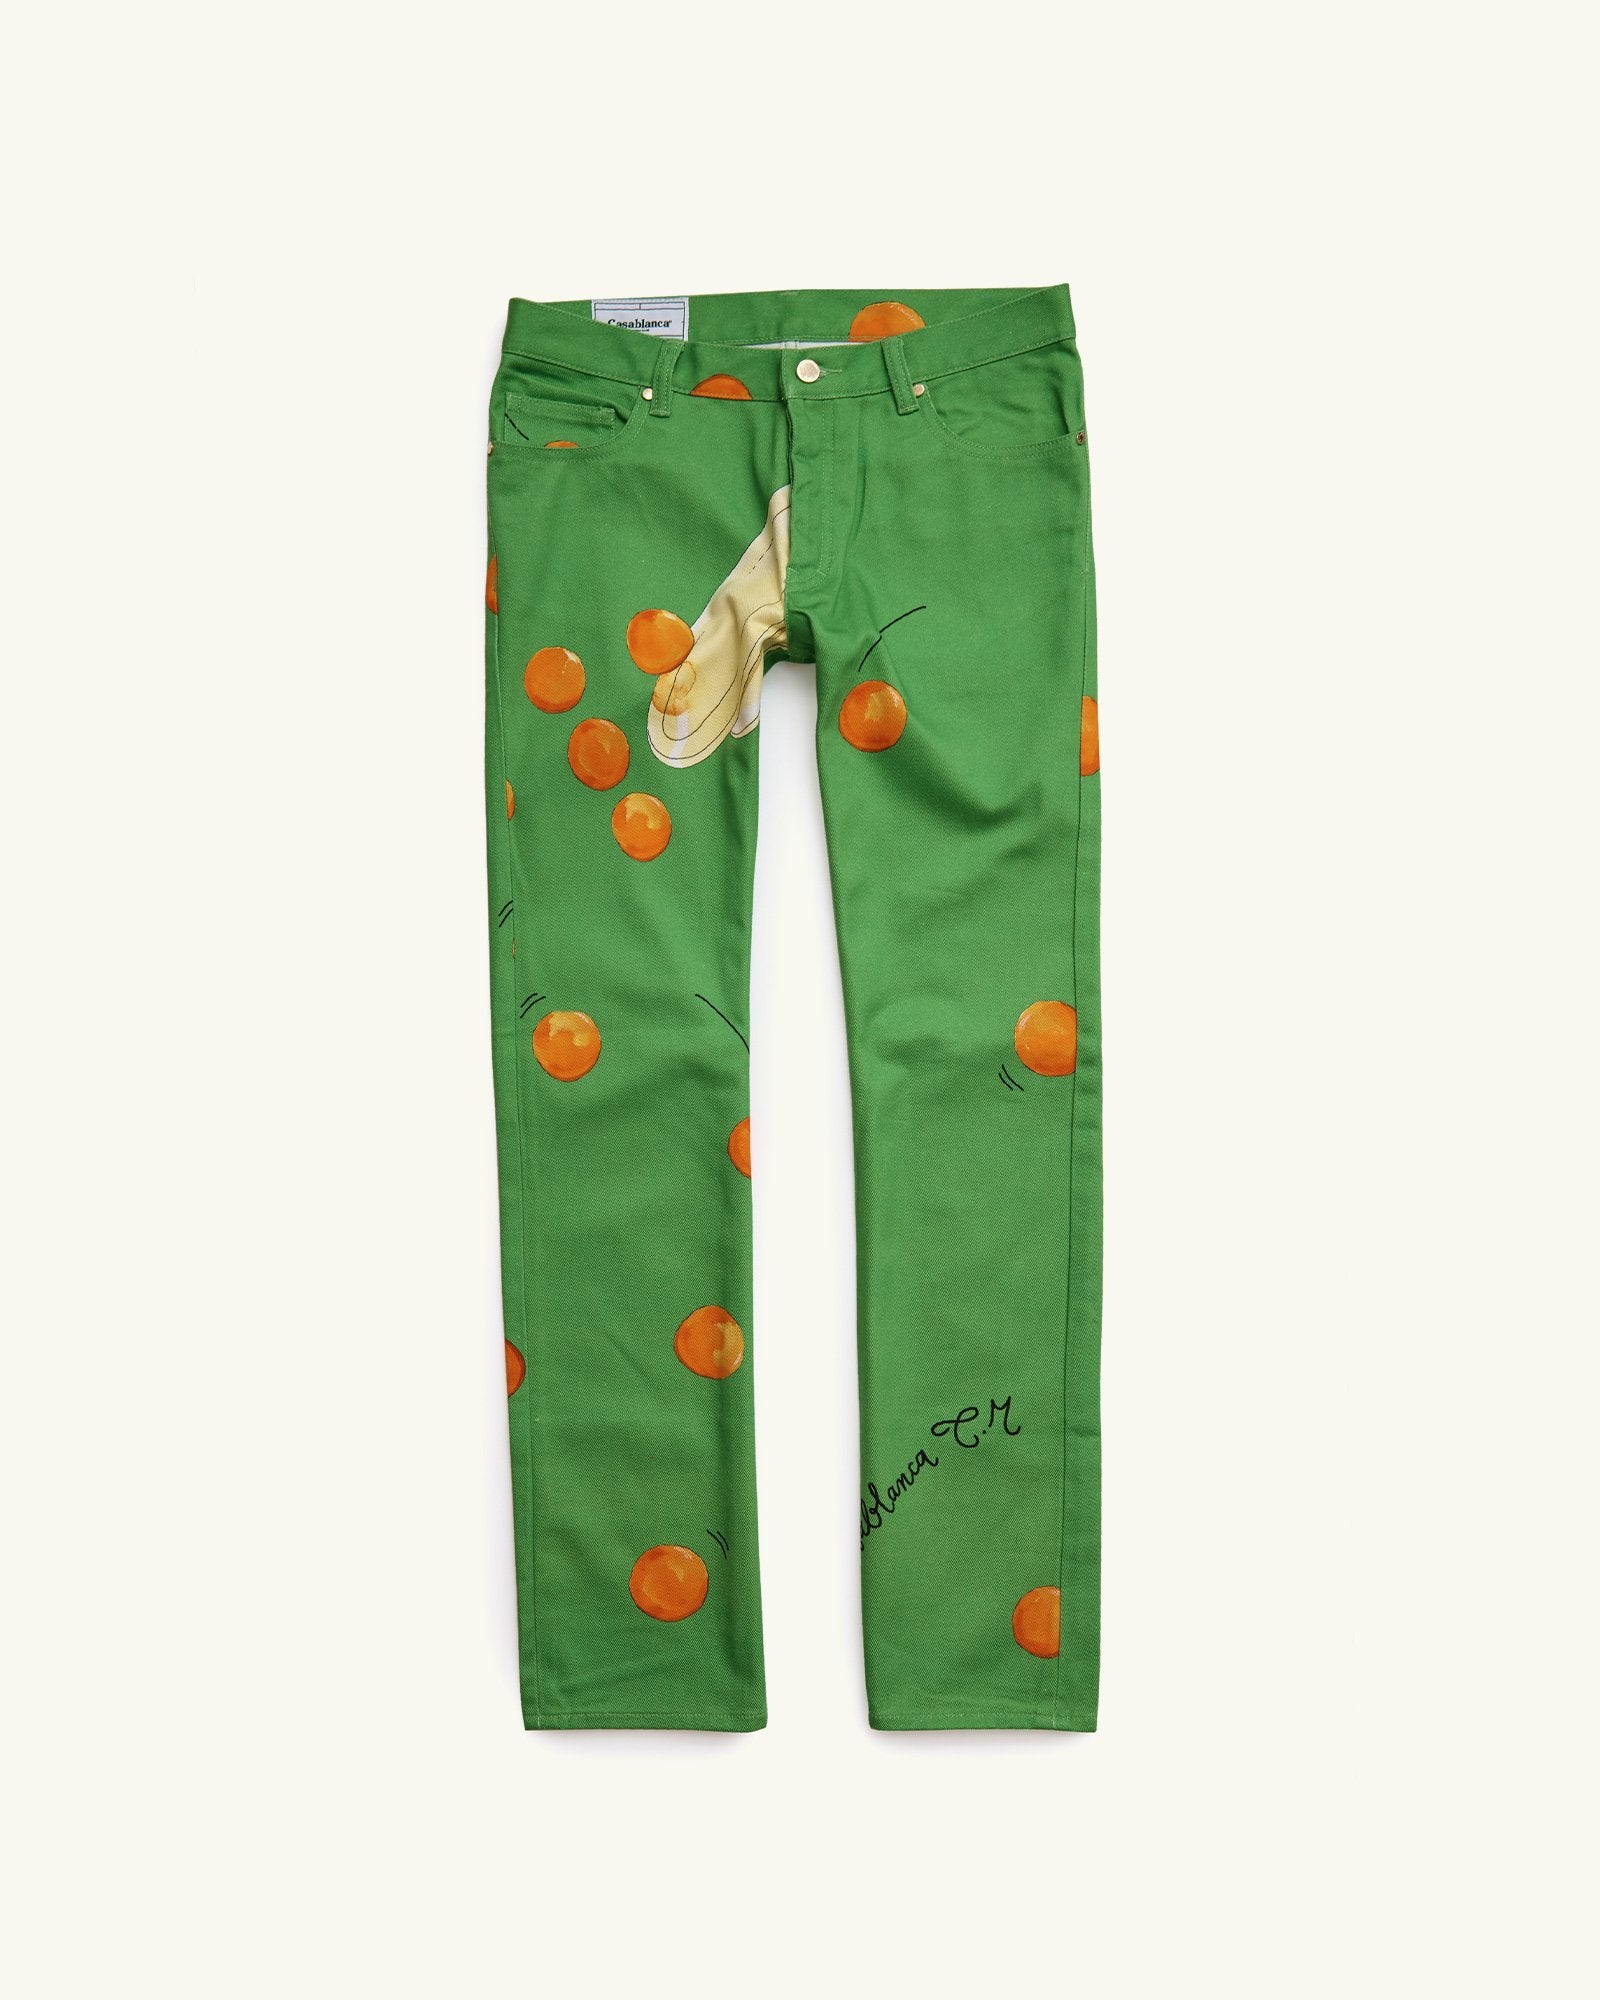 PRINTED DENIM JEANS ENCORE LES ORANGES GREEN